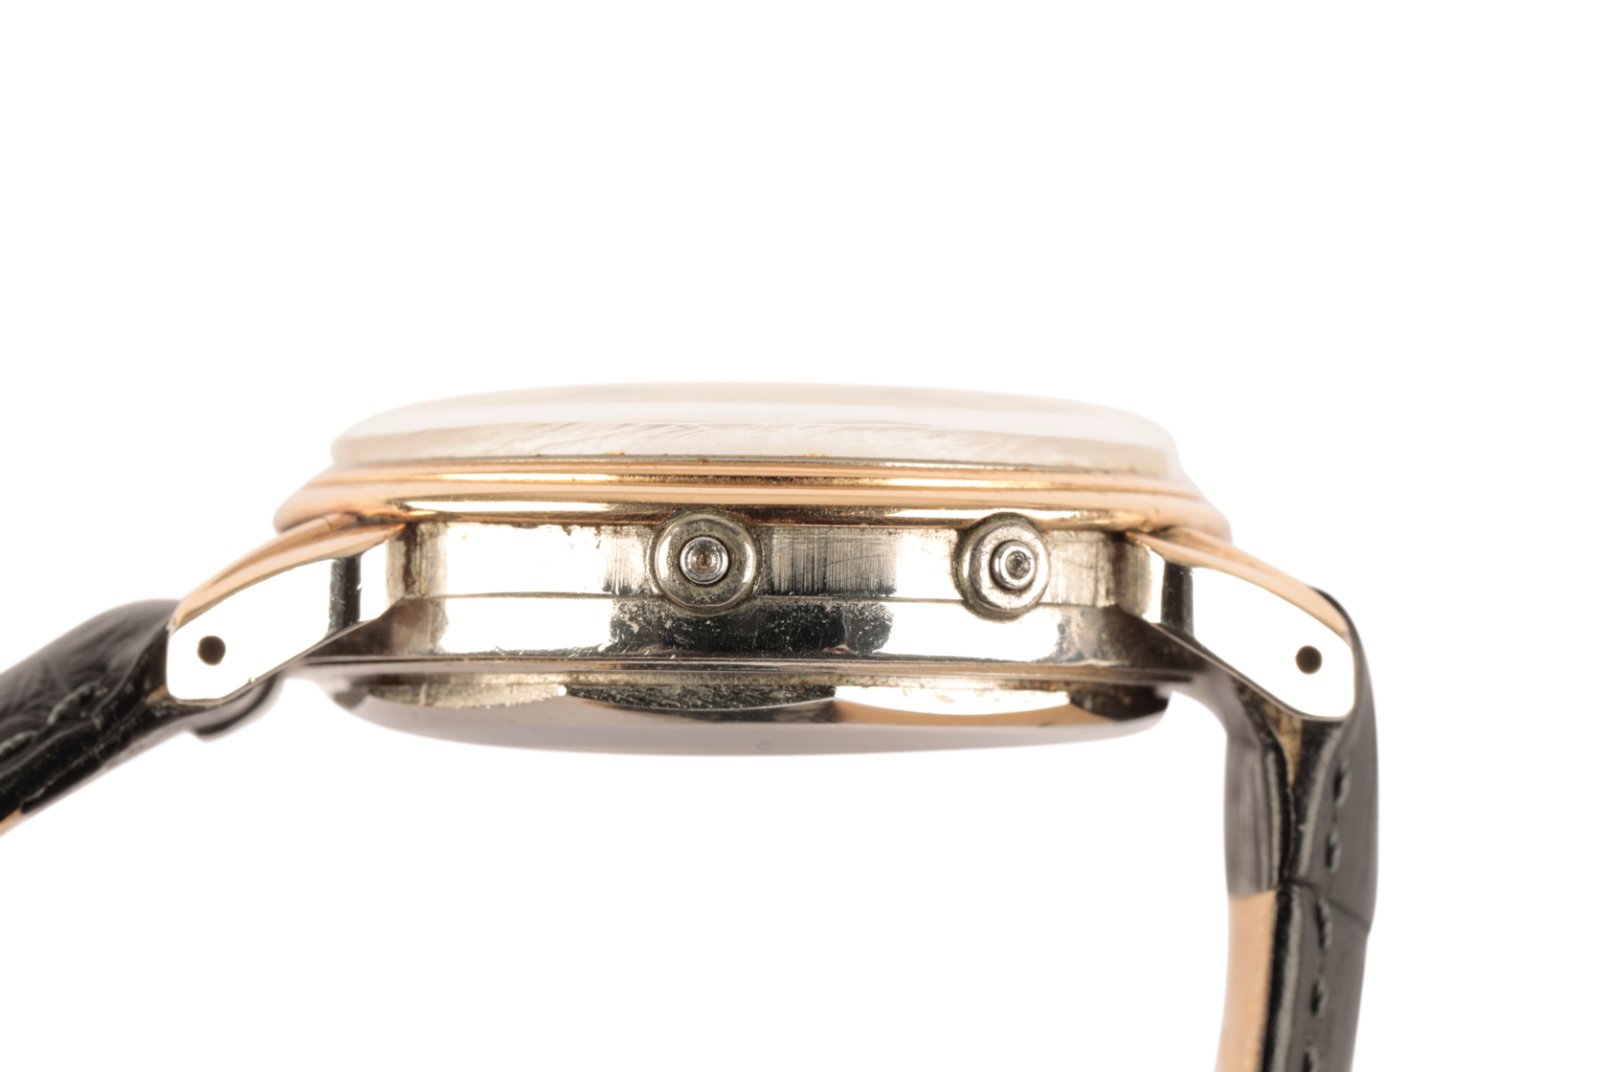 MOVADO CALENDOMATIC SPORT GENTLEMAN'S STAINLESS STEEL & GOLD PLATED WRIST WATCH - Image 2 of 7